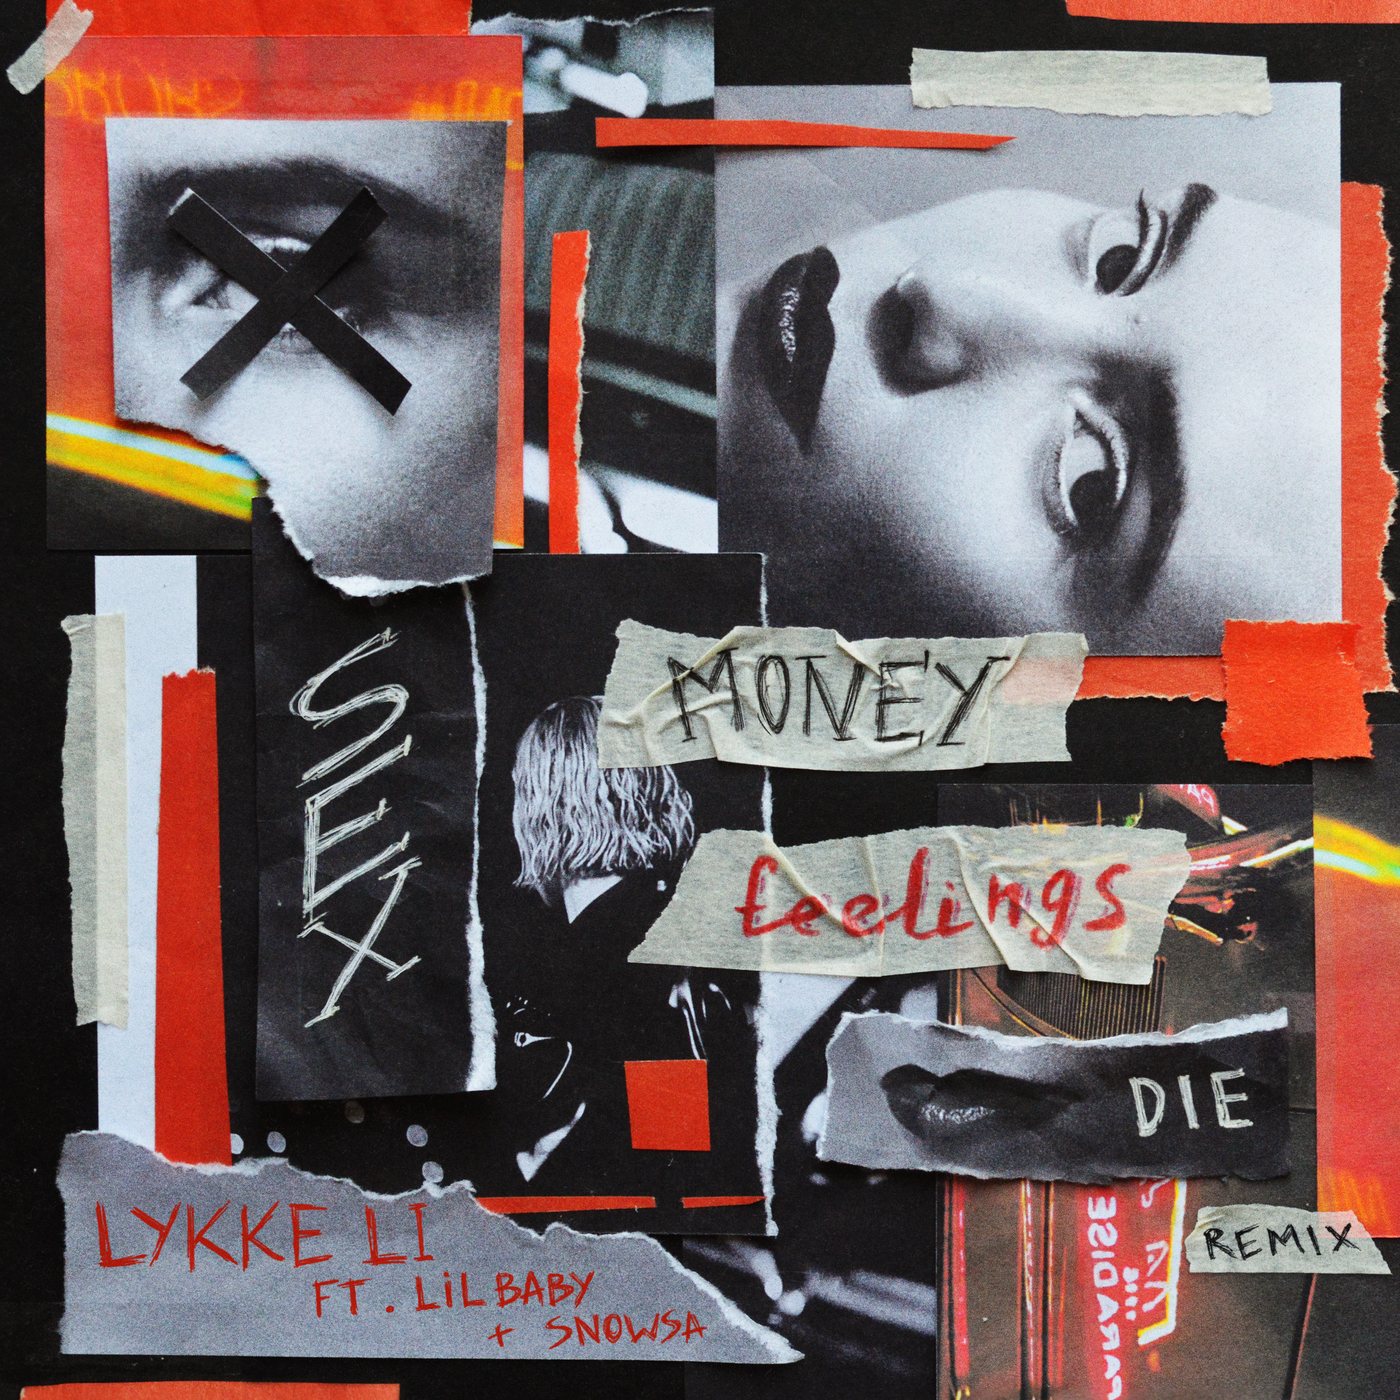 sex money feelings die REMIX - Lykke Li